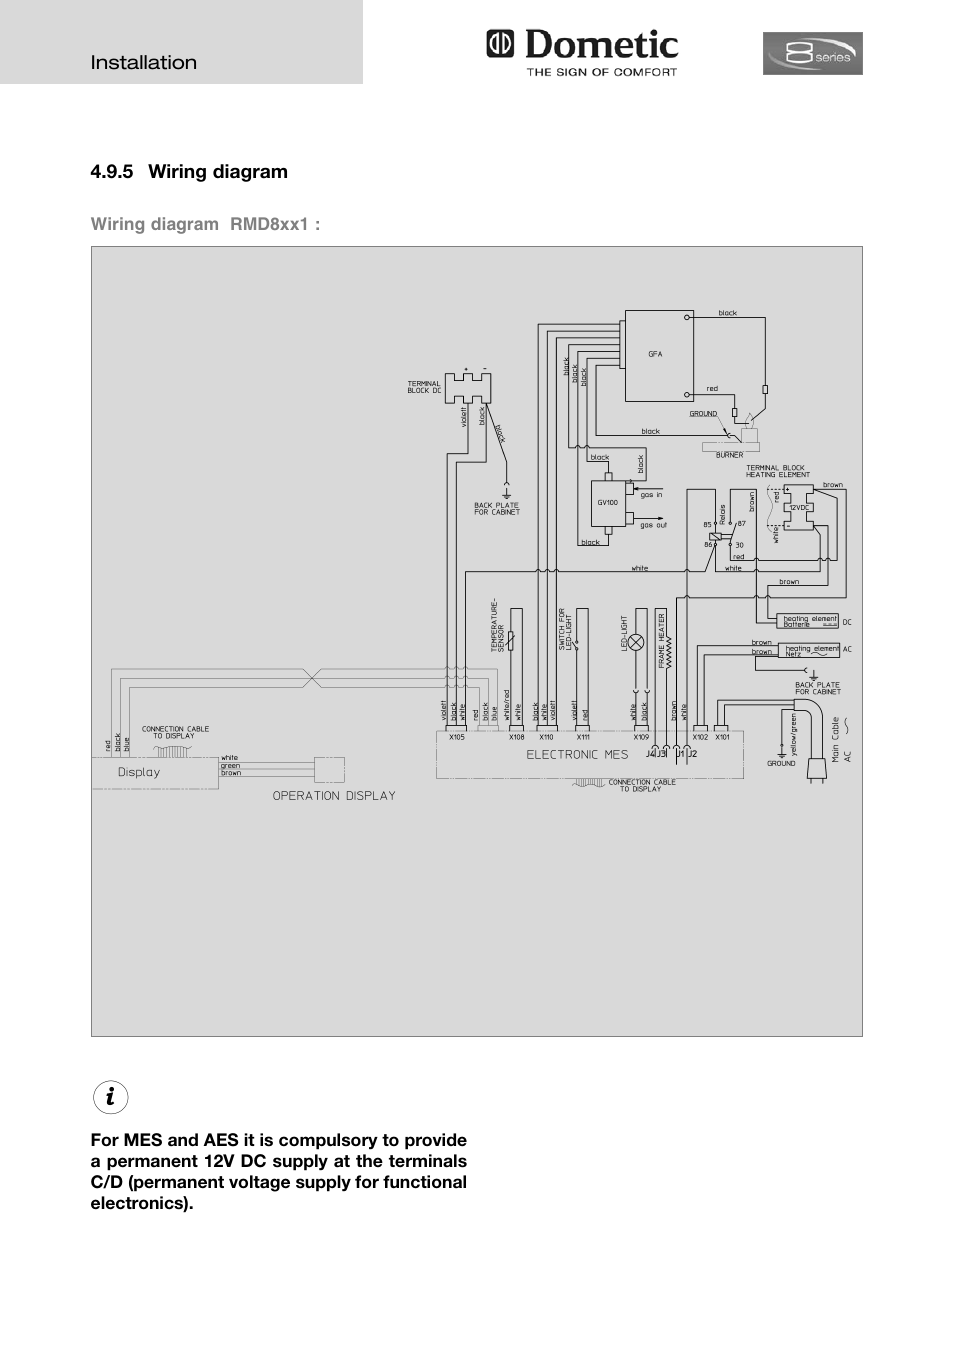 dometic absorption rmd 8555 page20 wiring diagram dometic ccc 2 dometic refrigerator diagram dometic cc2 wiring diagram at alyssarenee.co